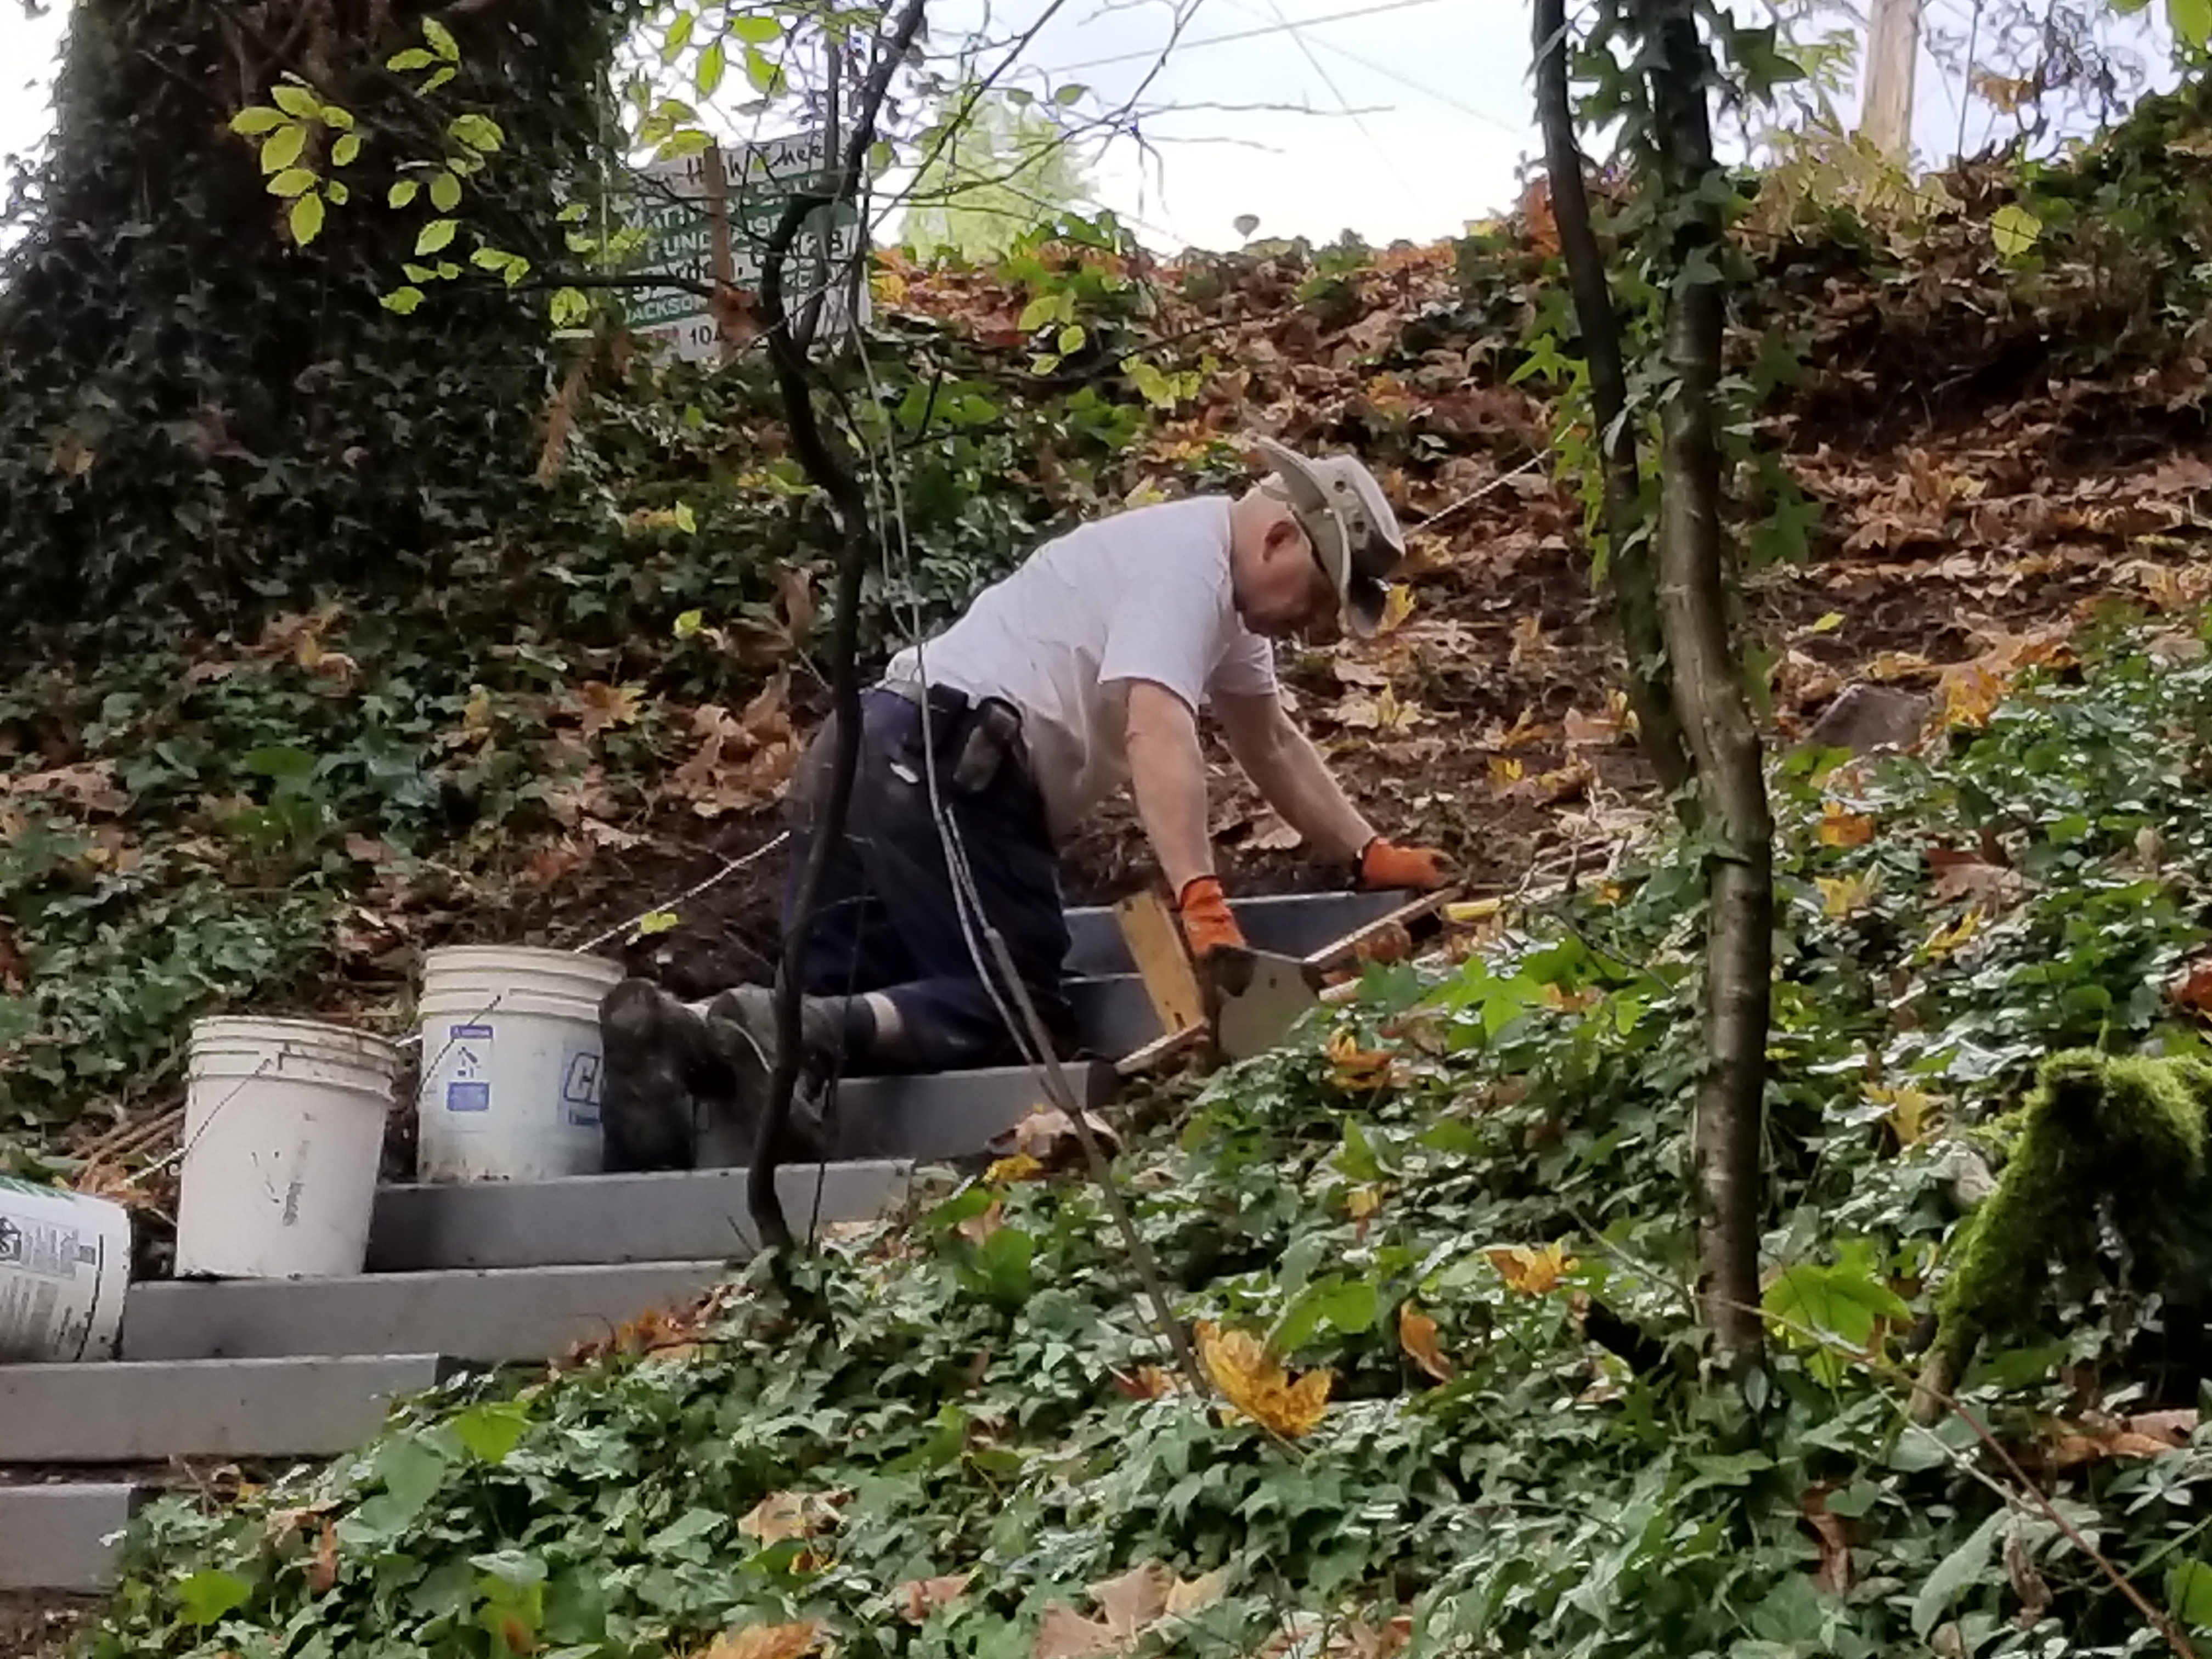 SW 25th stairs - Don